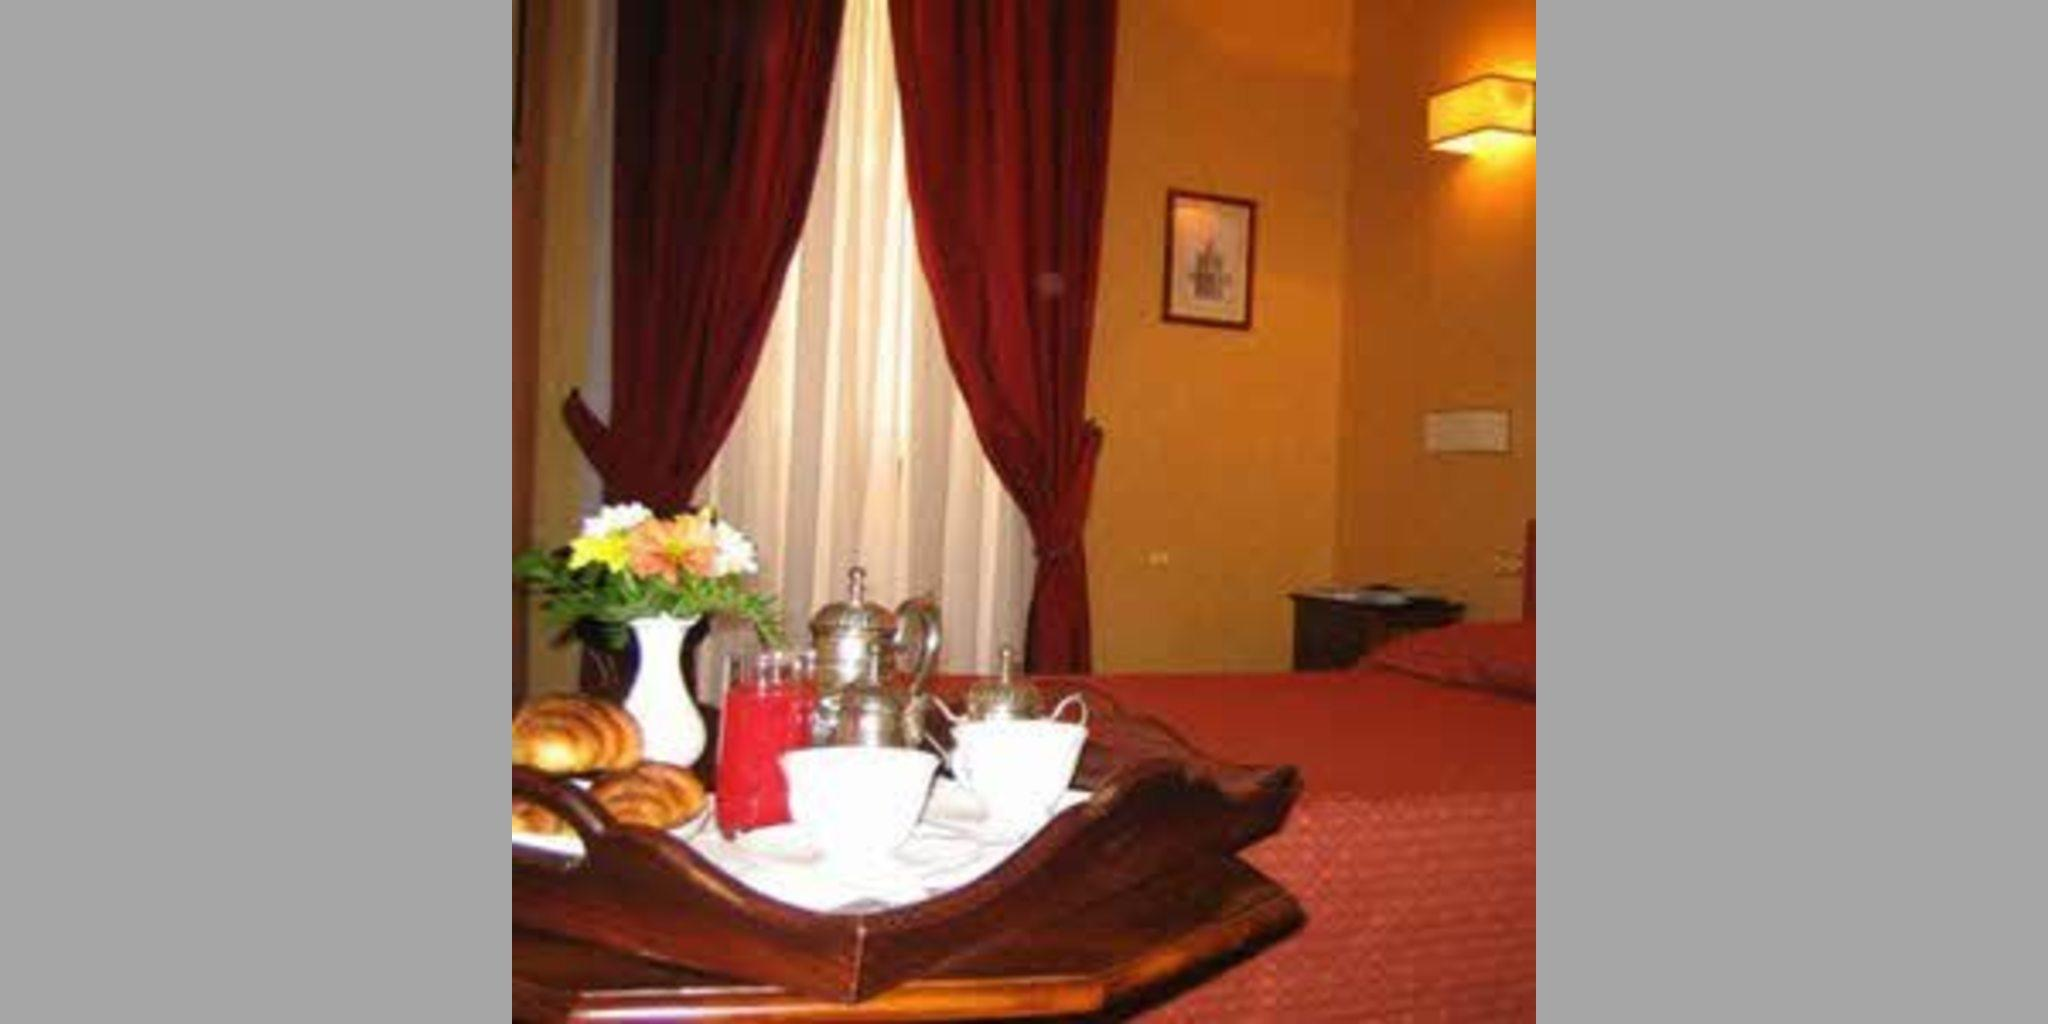 Bed & Breakfast Roma - Banchi Nuovi